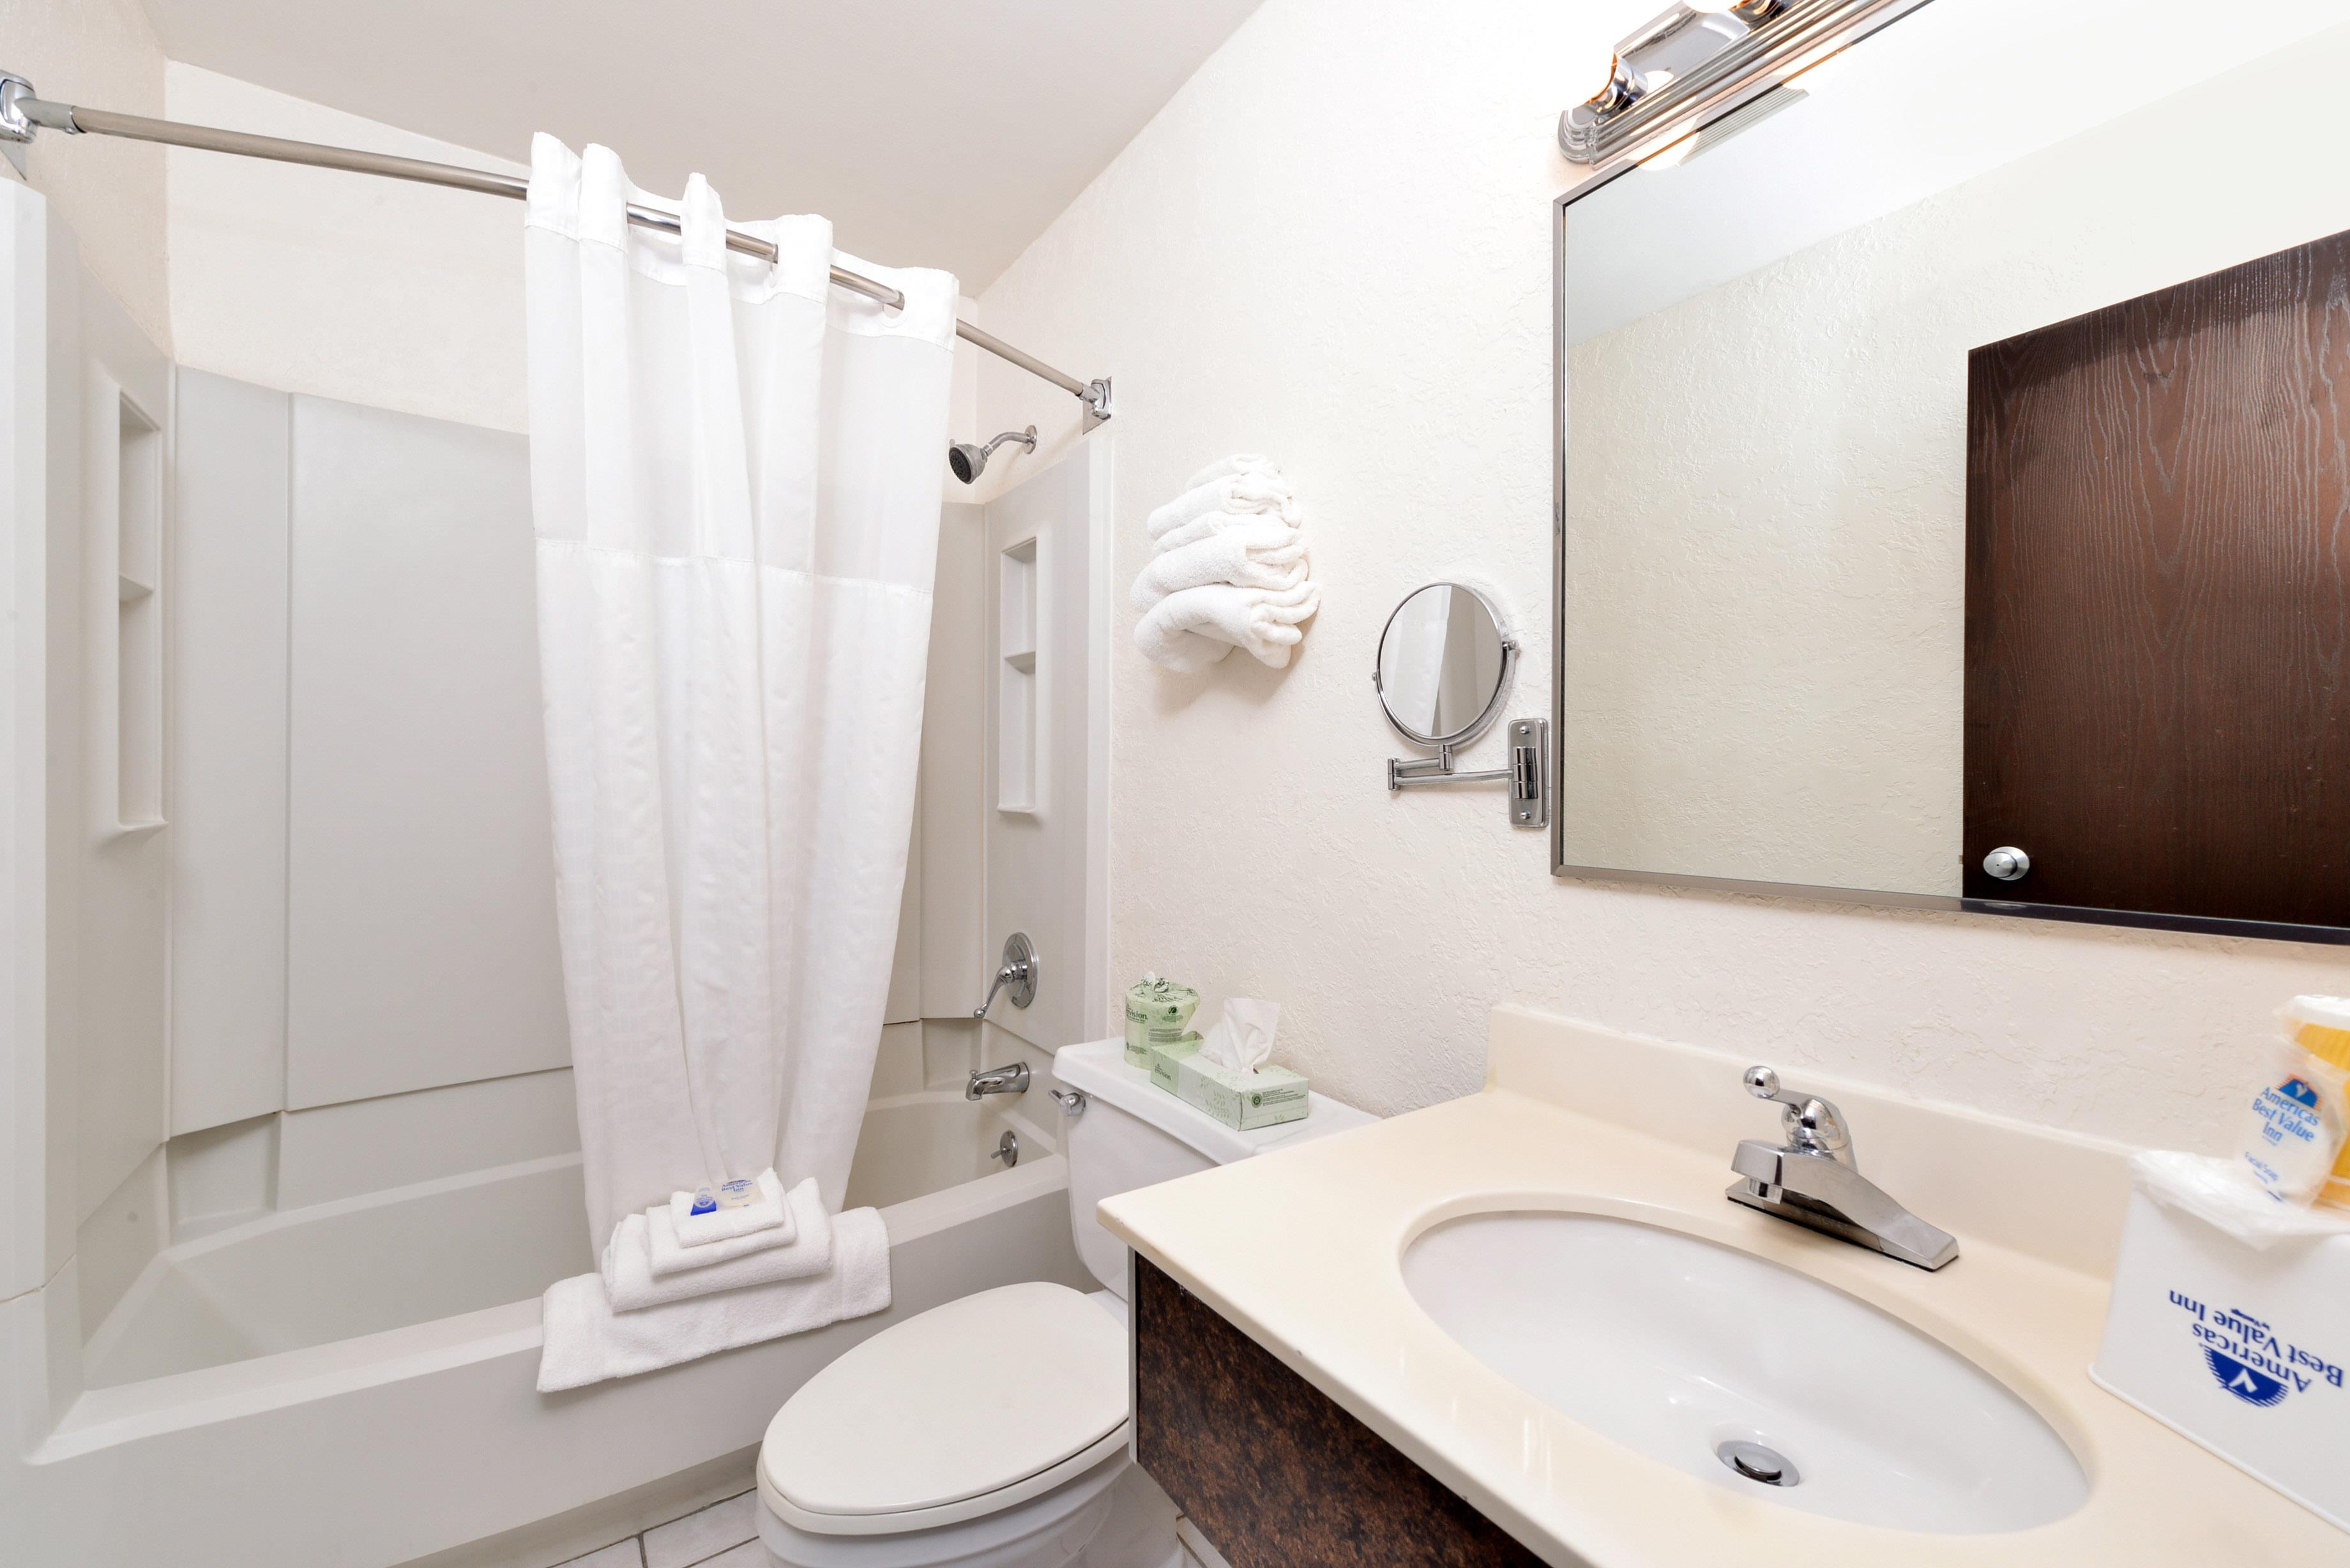 Americas Best Value Inn - New Paltz image 20